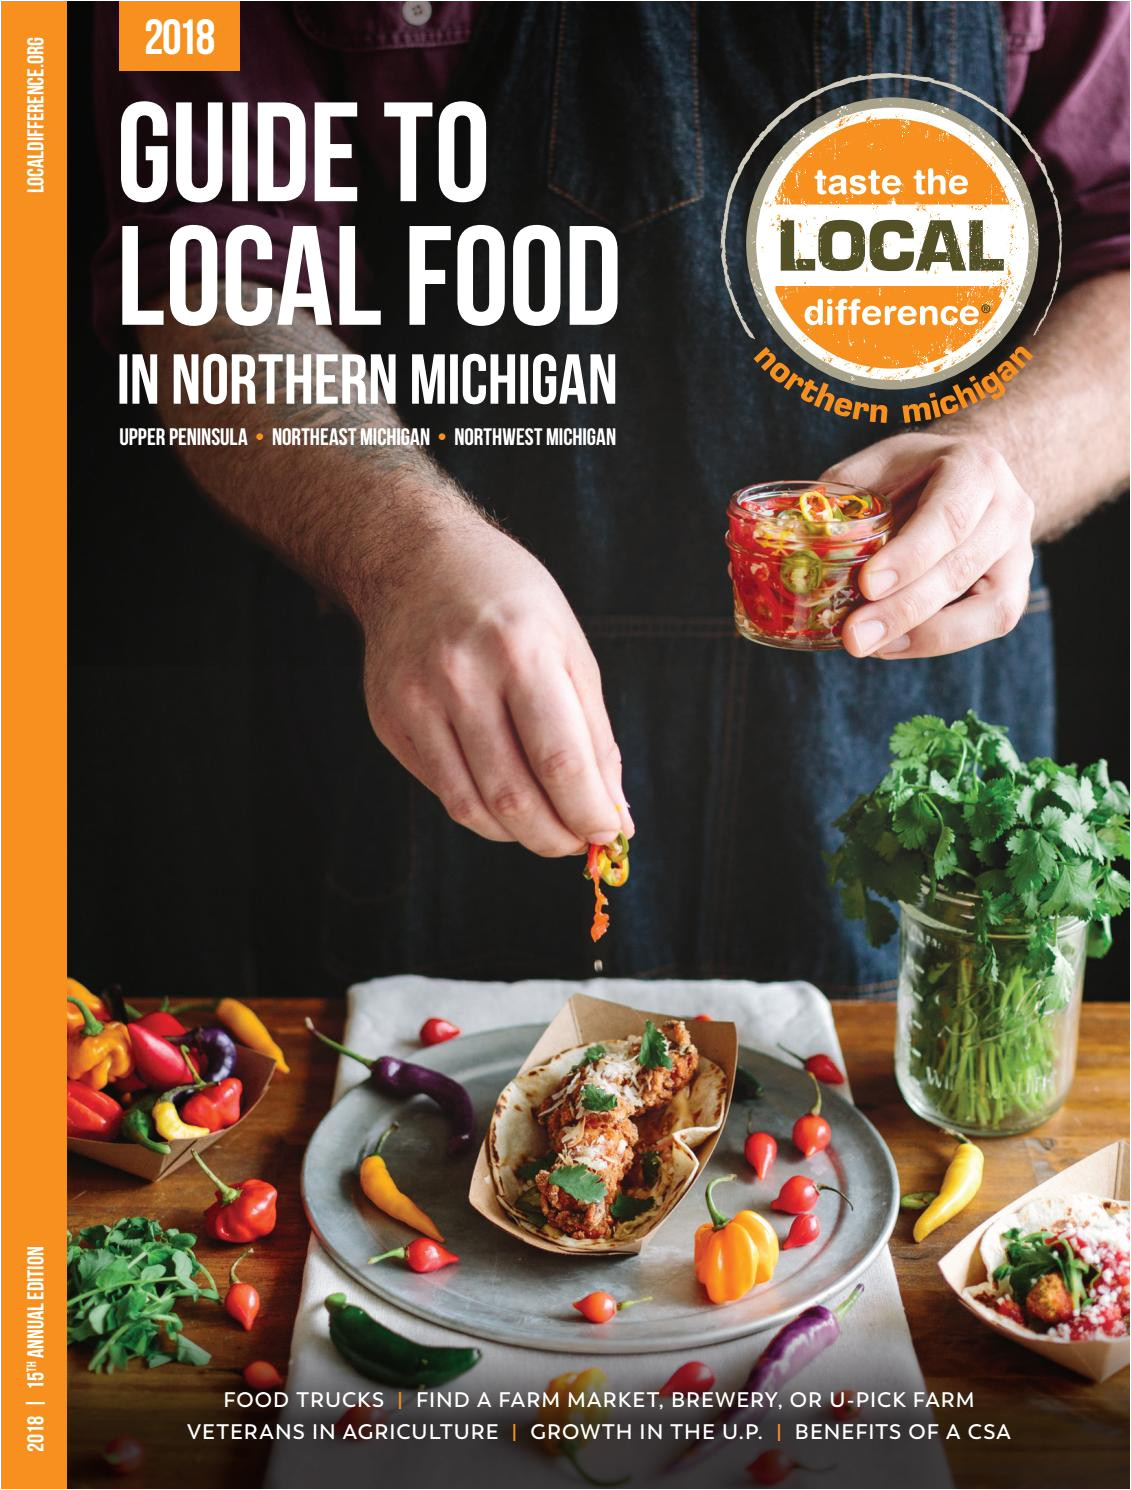 2018 guide to local food for northern michigan by taste the local difference issuu